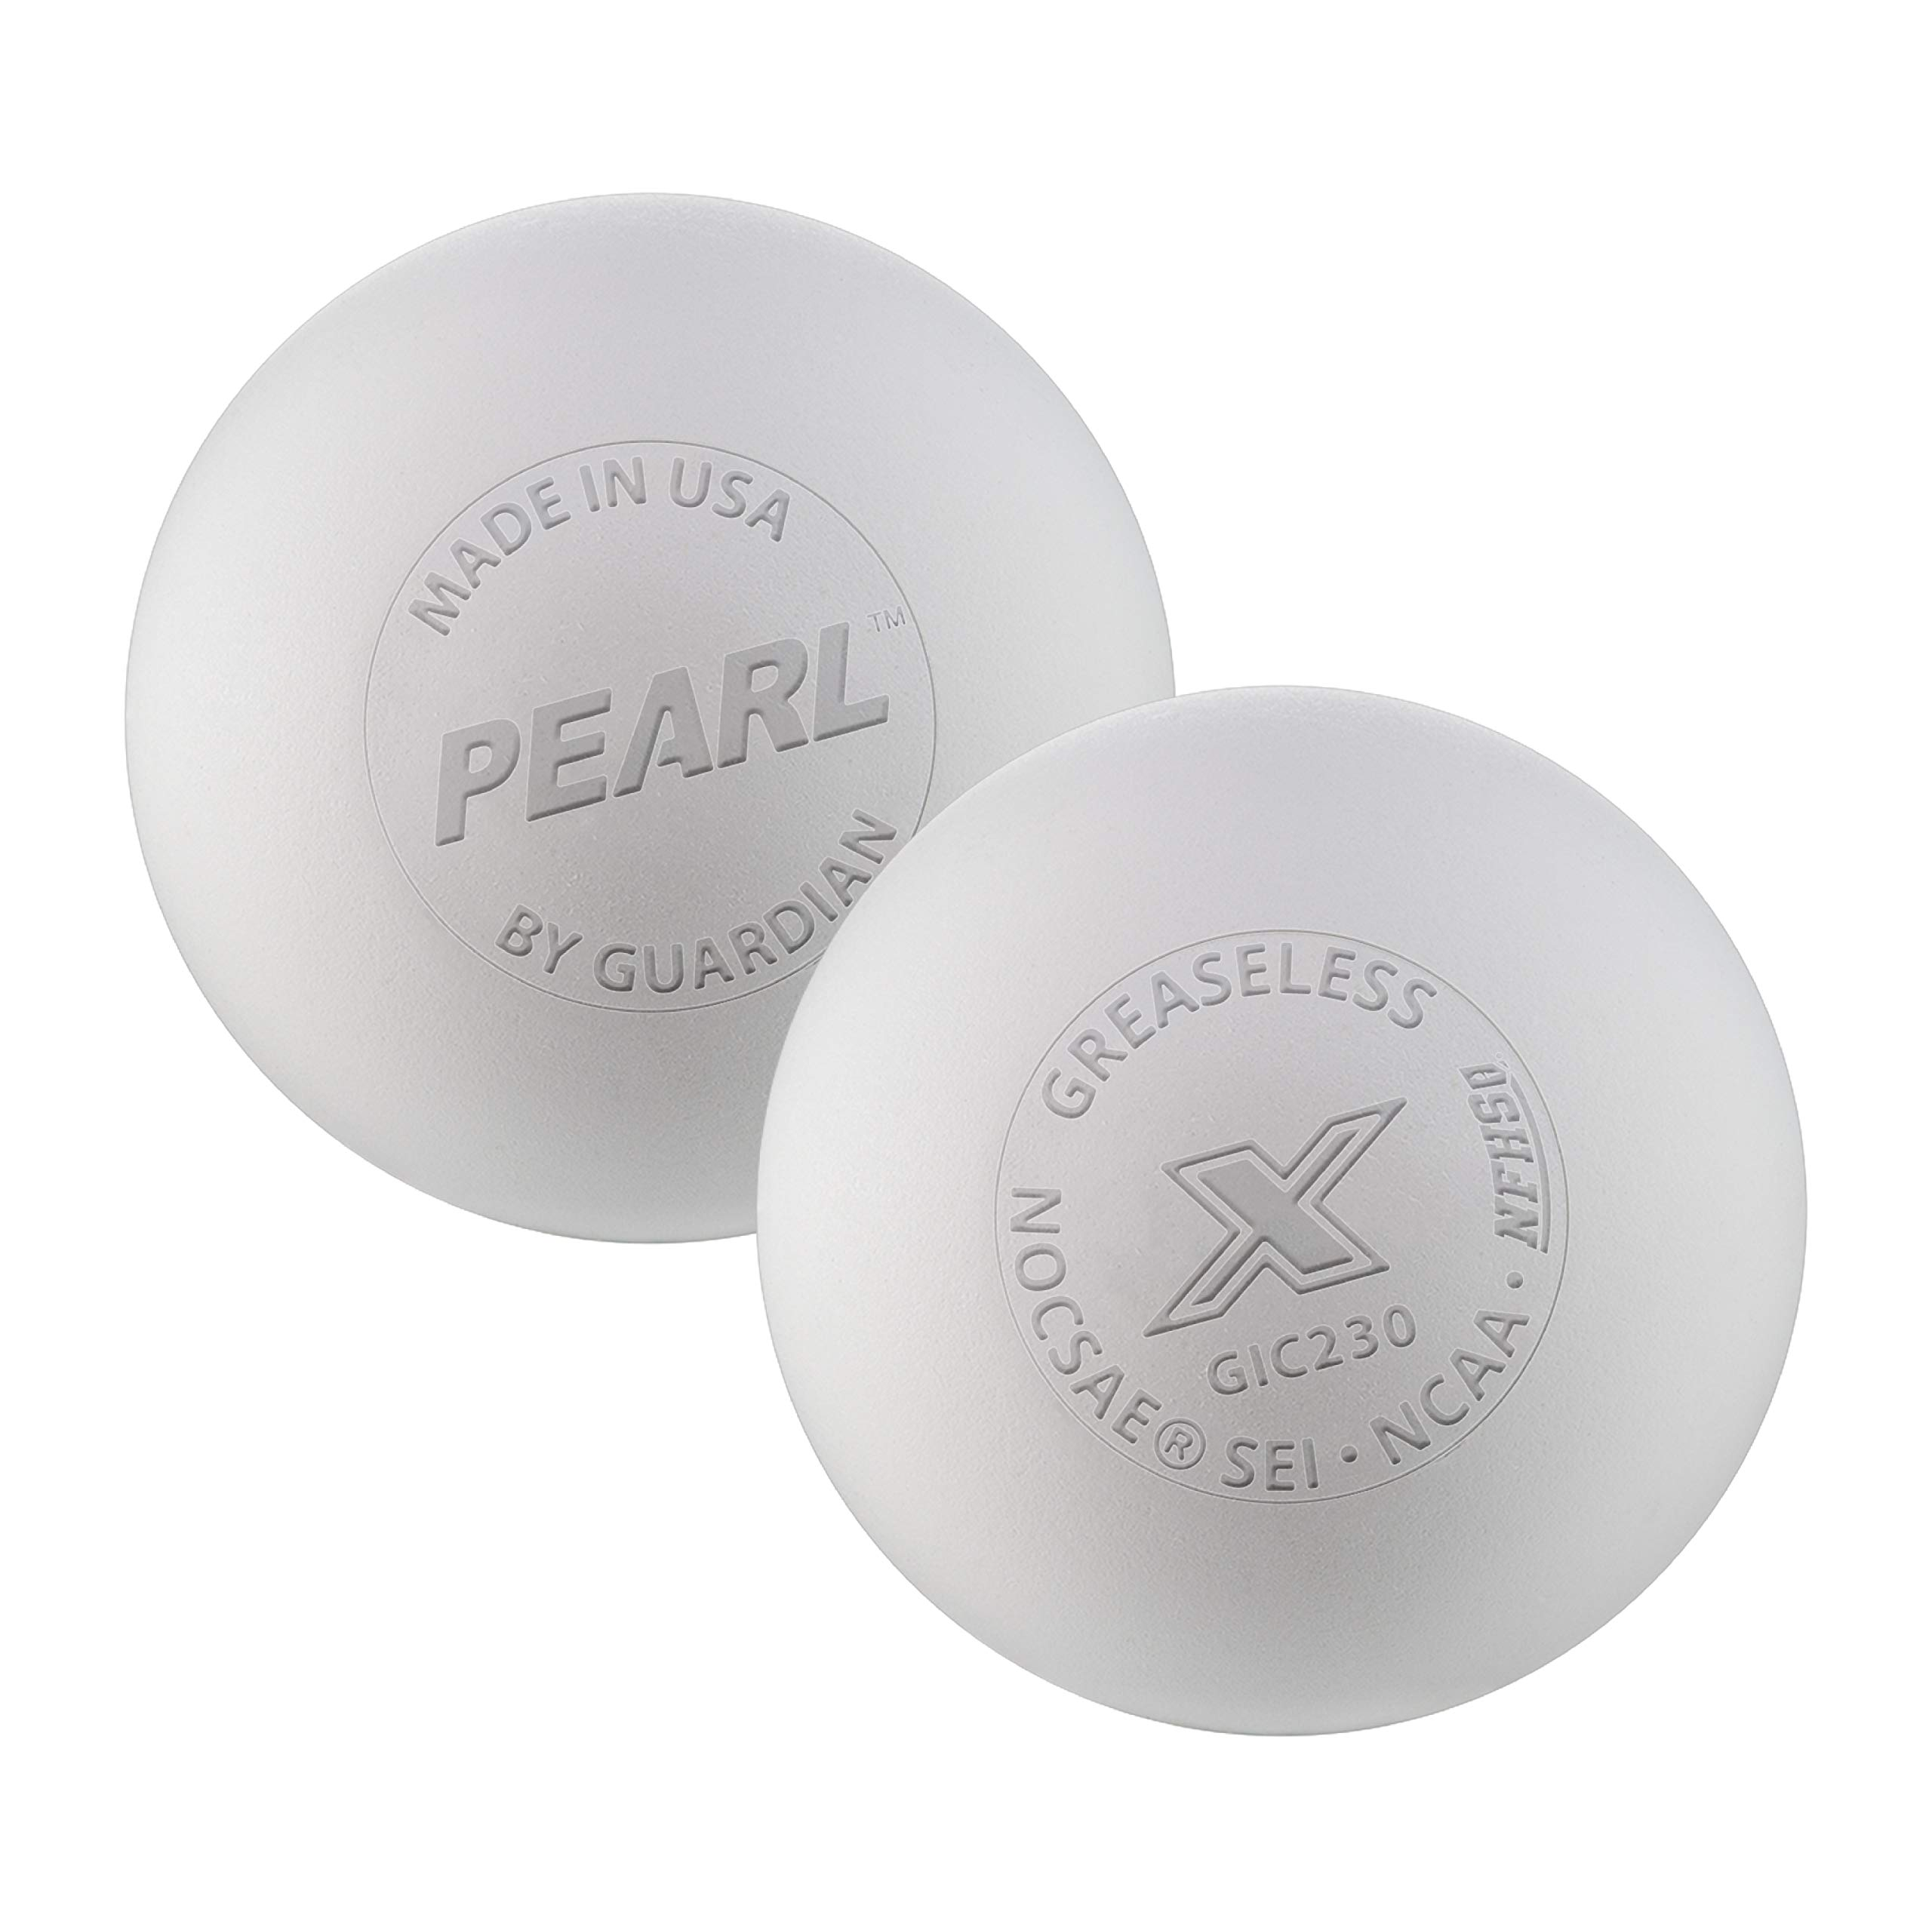 The Pearl by Guardian - Greaseless Lacrosse Balls (White, 3 Pack)